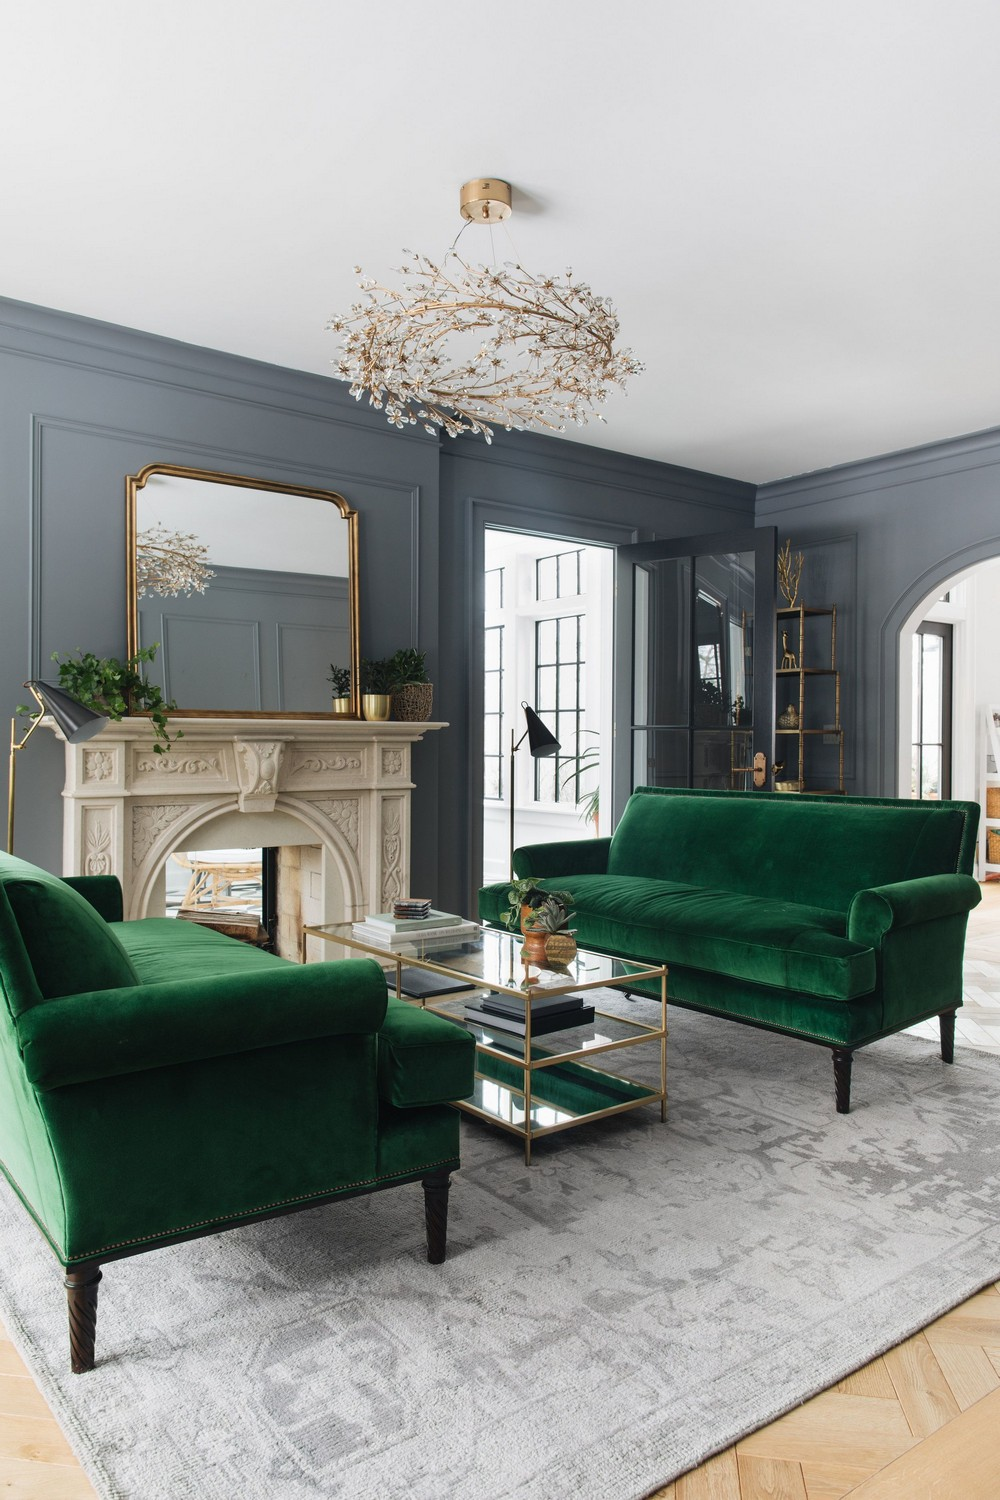 Emerald Green: the perfect color to bring more glamour to your home emerald green Emerald Green: the perfect color to bring more glamour to your home 88a0b6b83a668bc05cc85319d11ab189